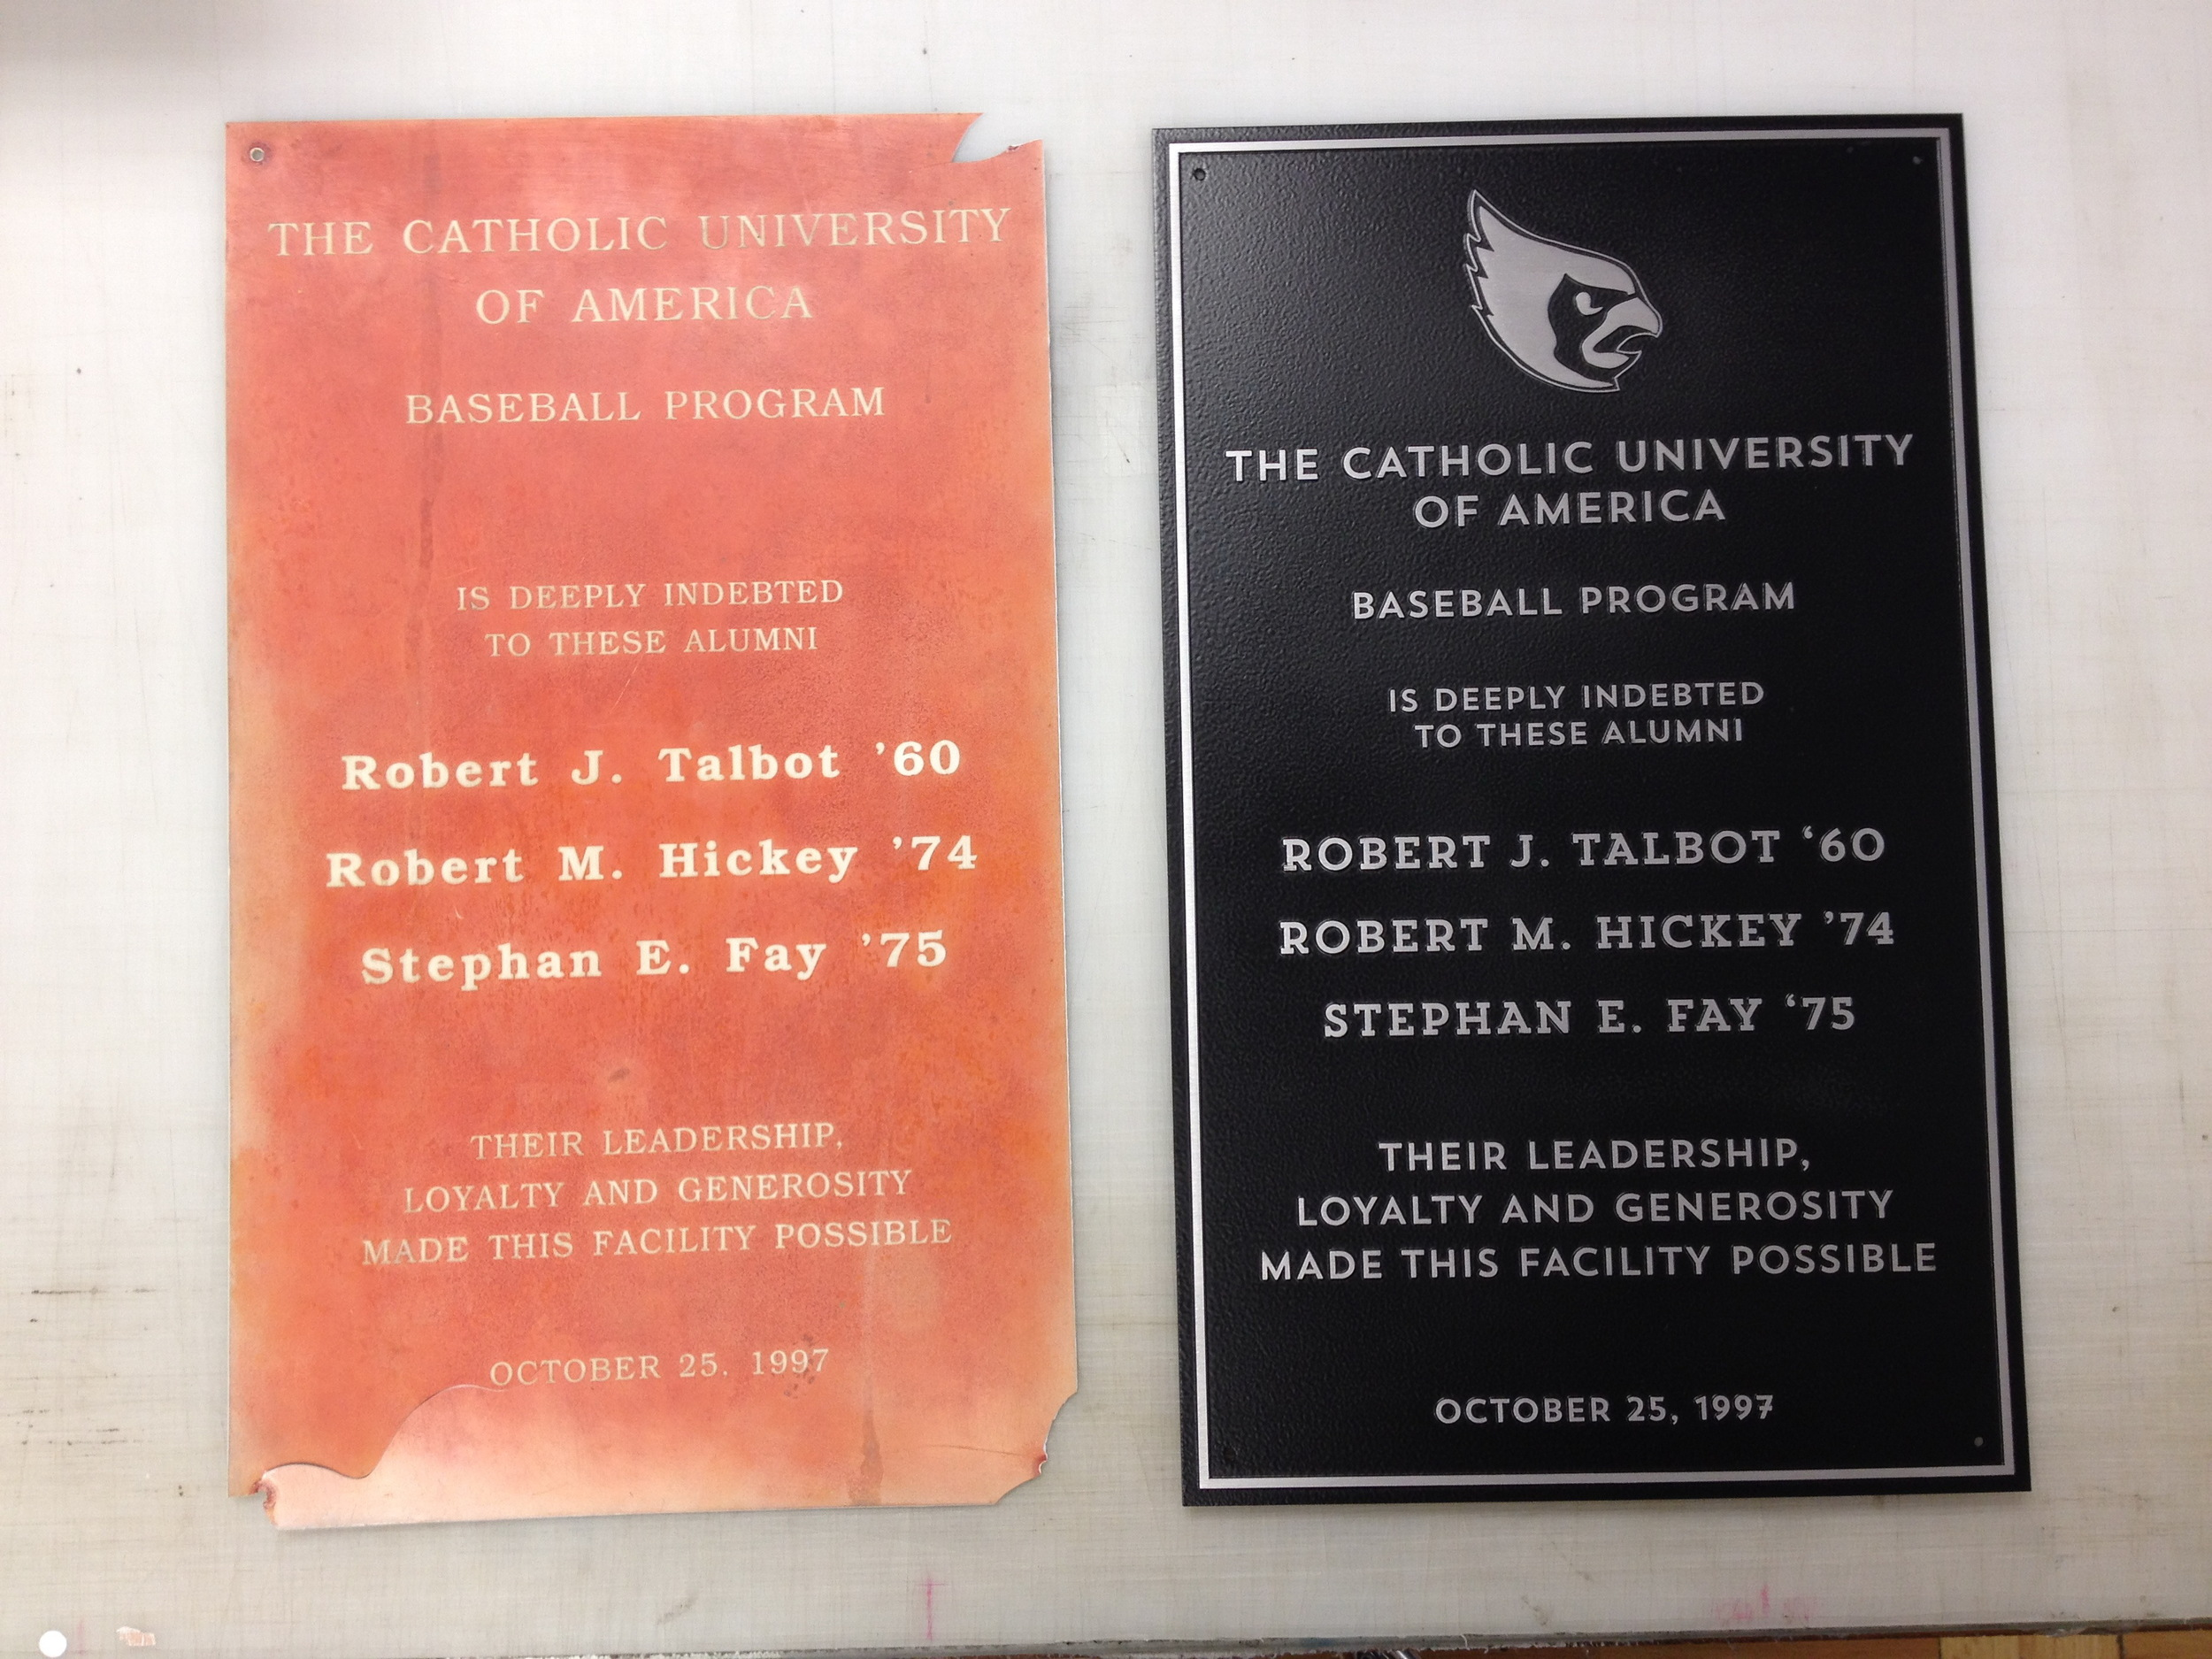 Before and after plaques for Catholic University